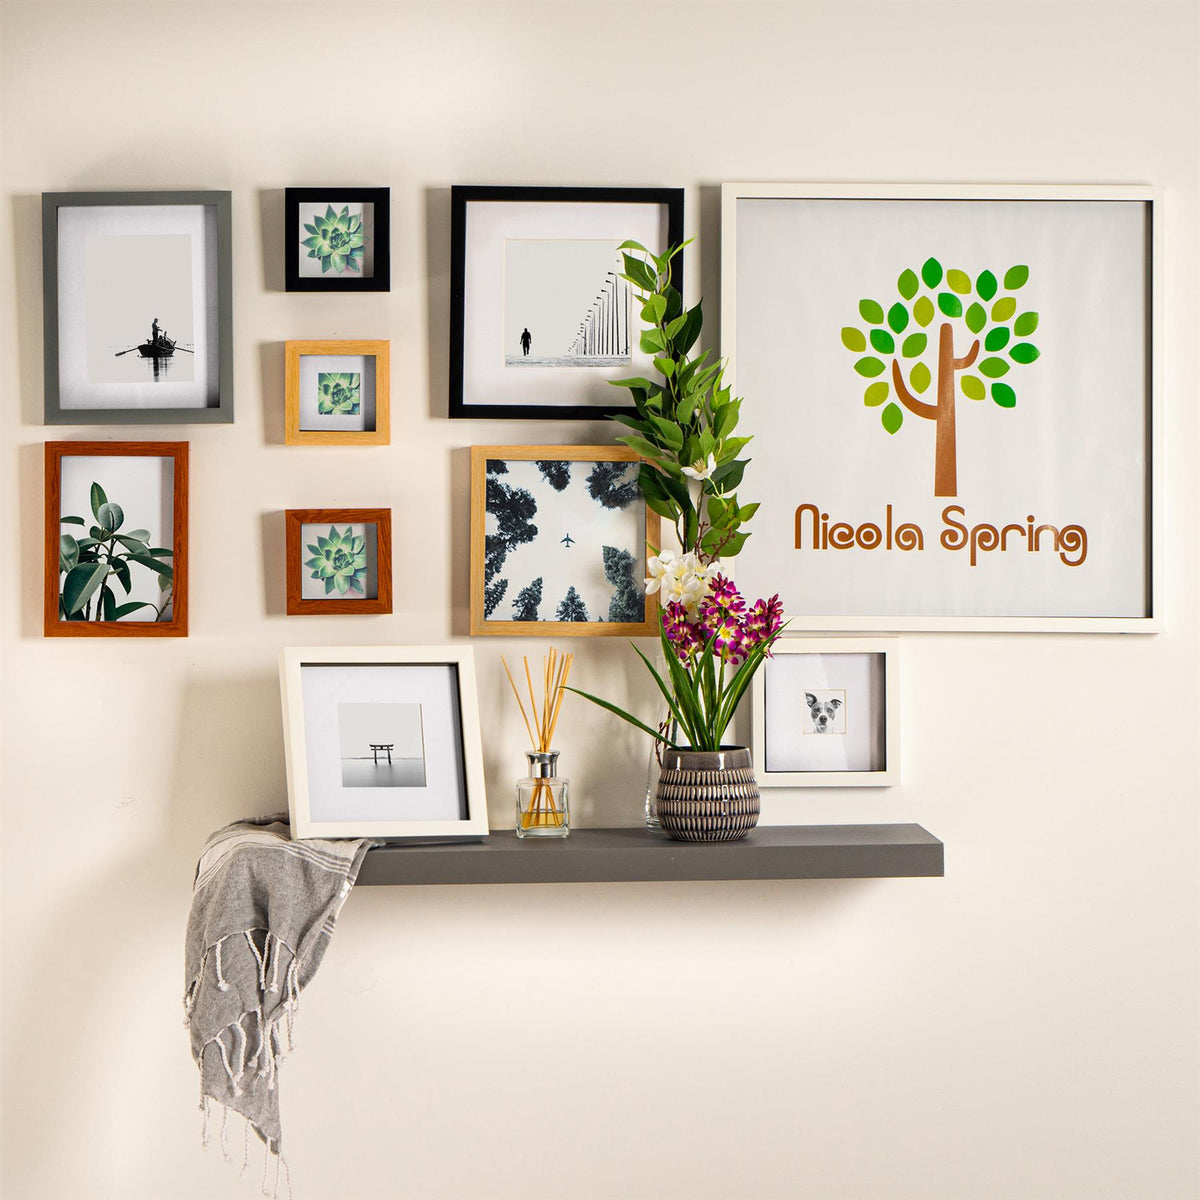 "Nicola Spring Picture Mount for 8 x 8"" Frame 